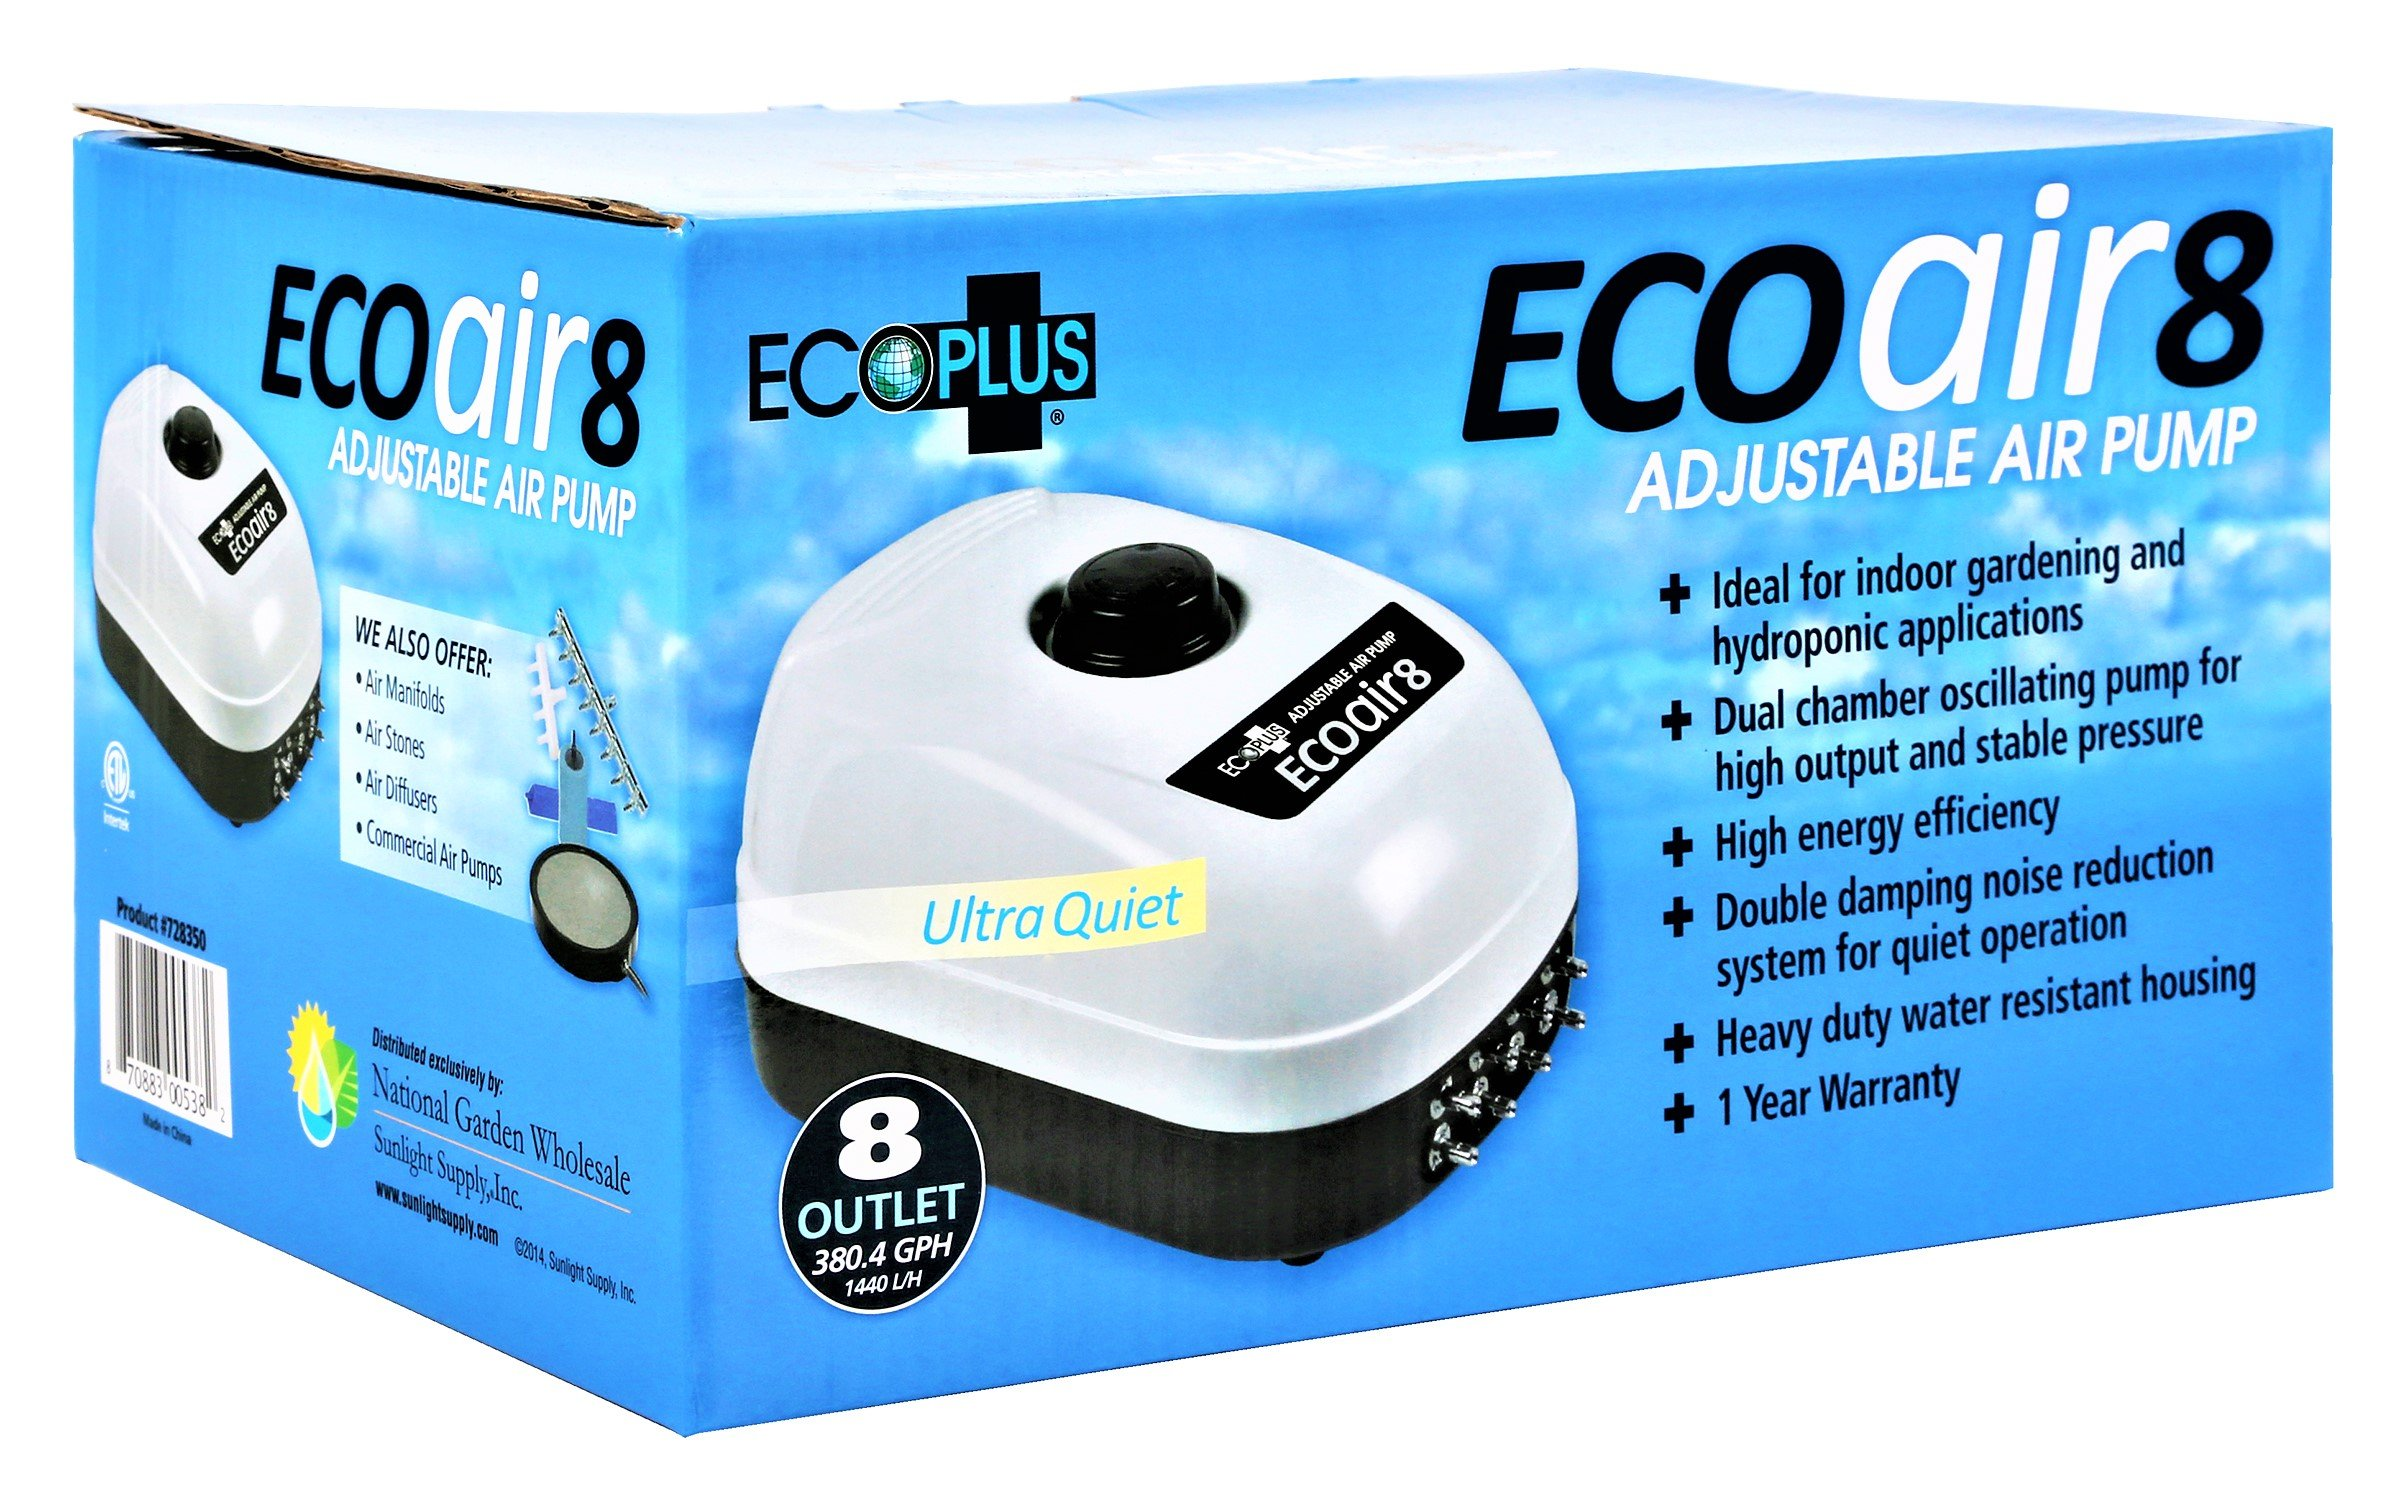 EcoPlus 380 GPH (1440 LPH, 13W) Air Pump w/ 8 Outlets | Aquarium, Fish Tank, Fountain, Pond, Hydroponics by EcoPlus